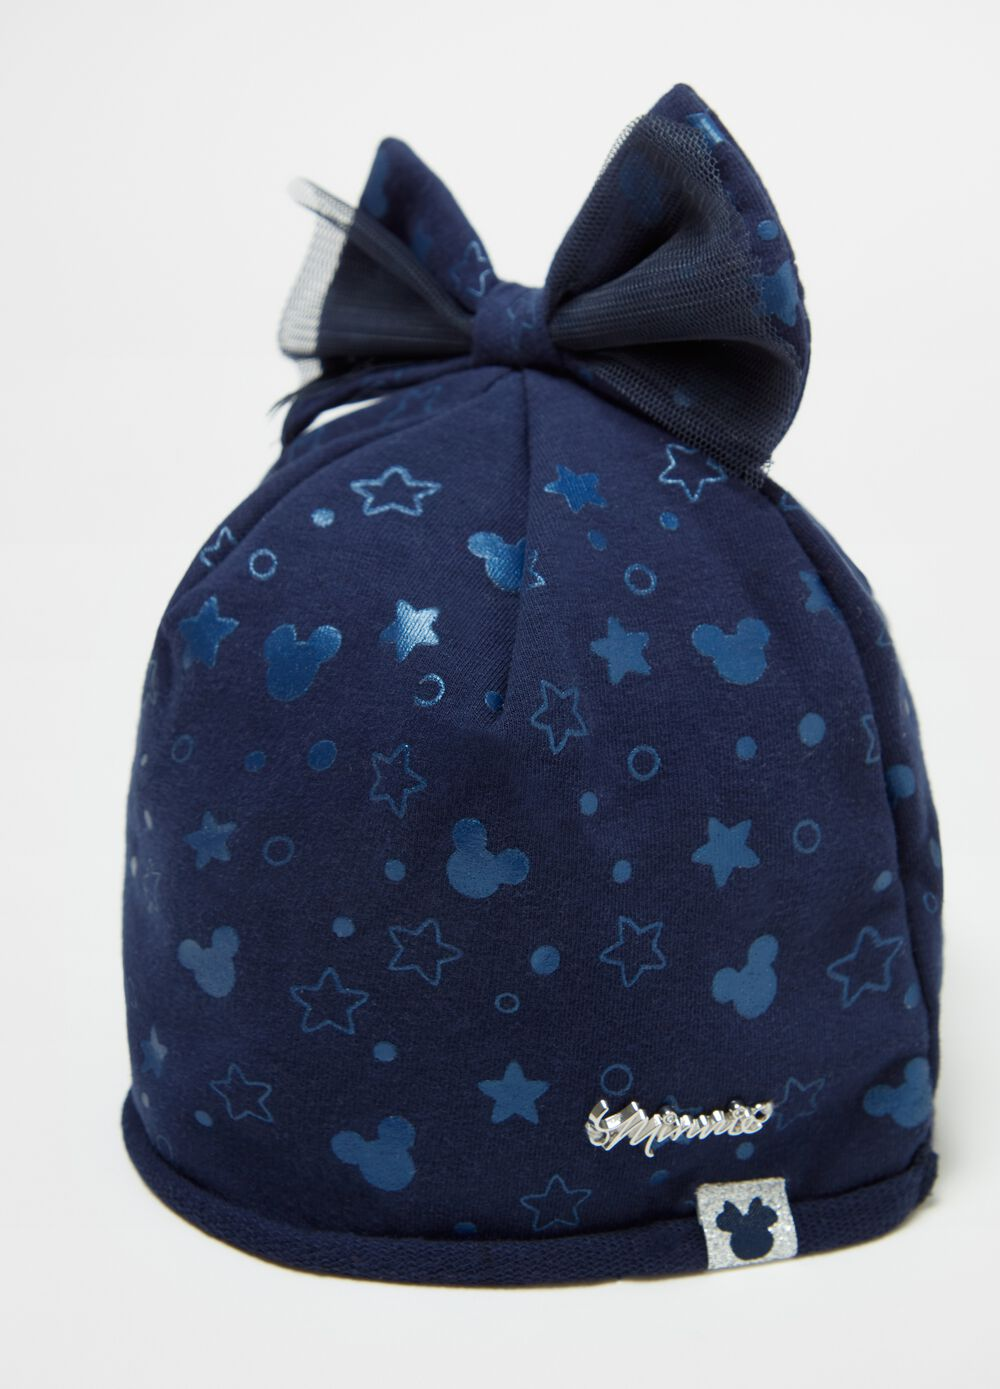 Organic cotton hat with Disney Minnie Mouse pattern